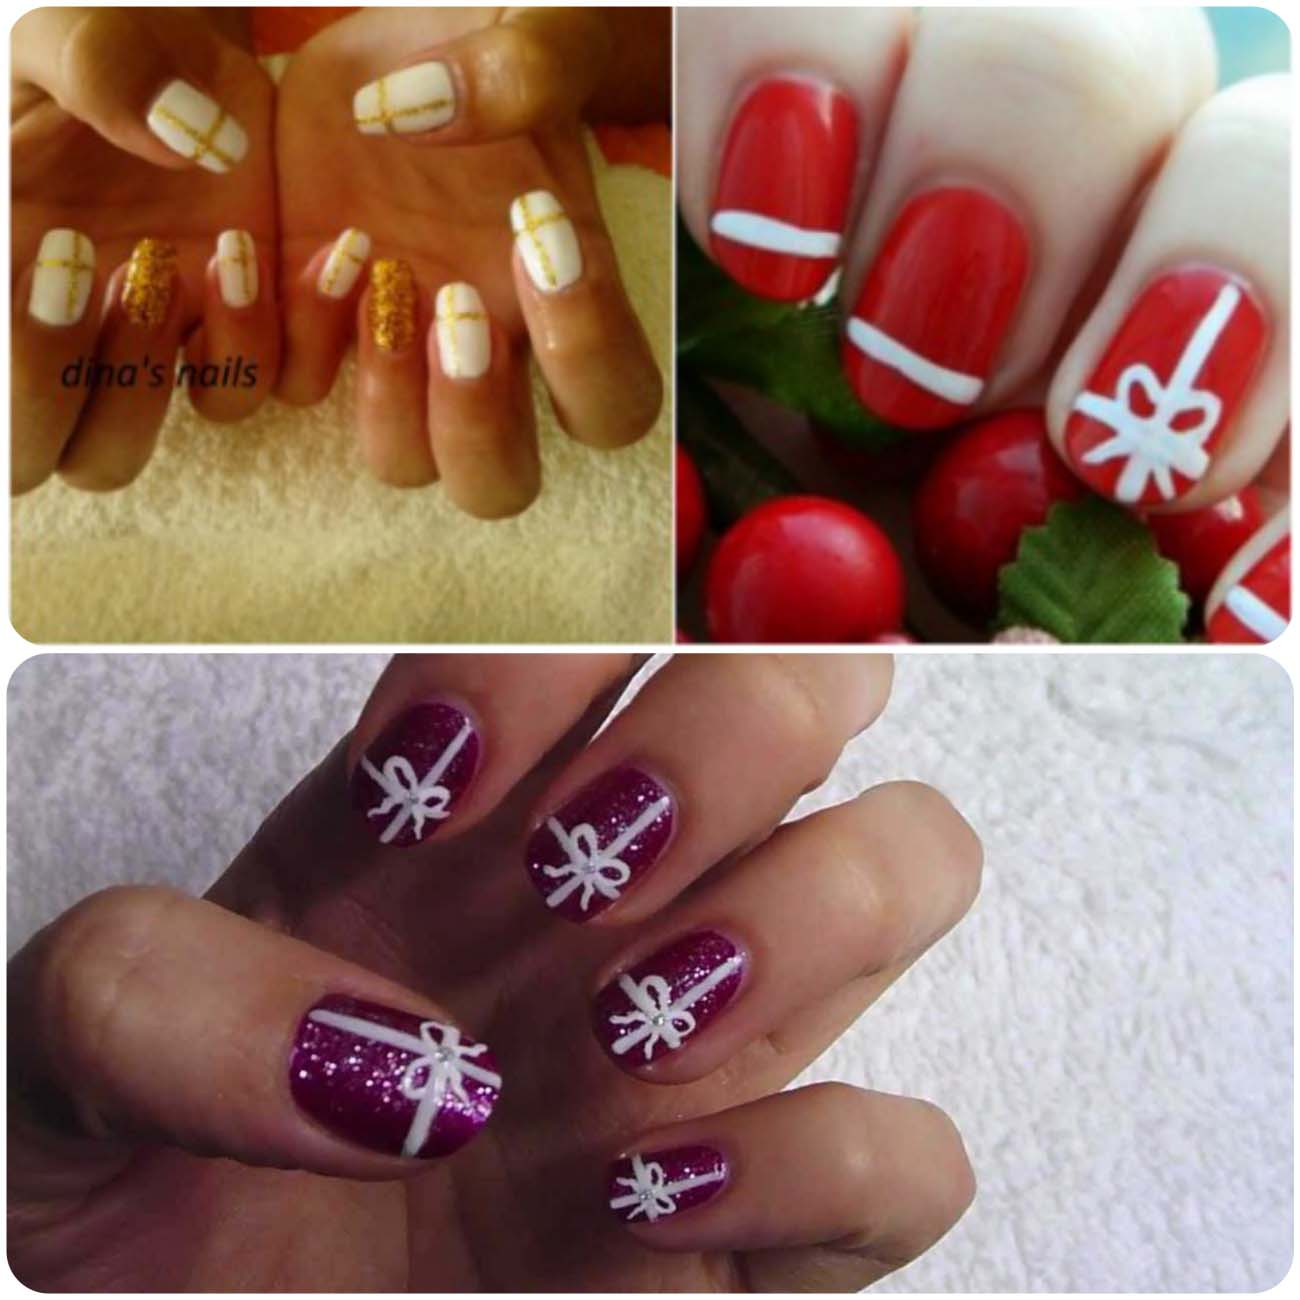 Charistmas Winter Nail art designs (3)_Fotor_Collage